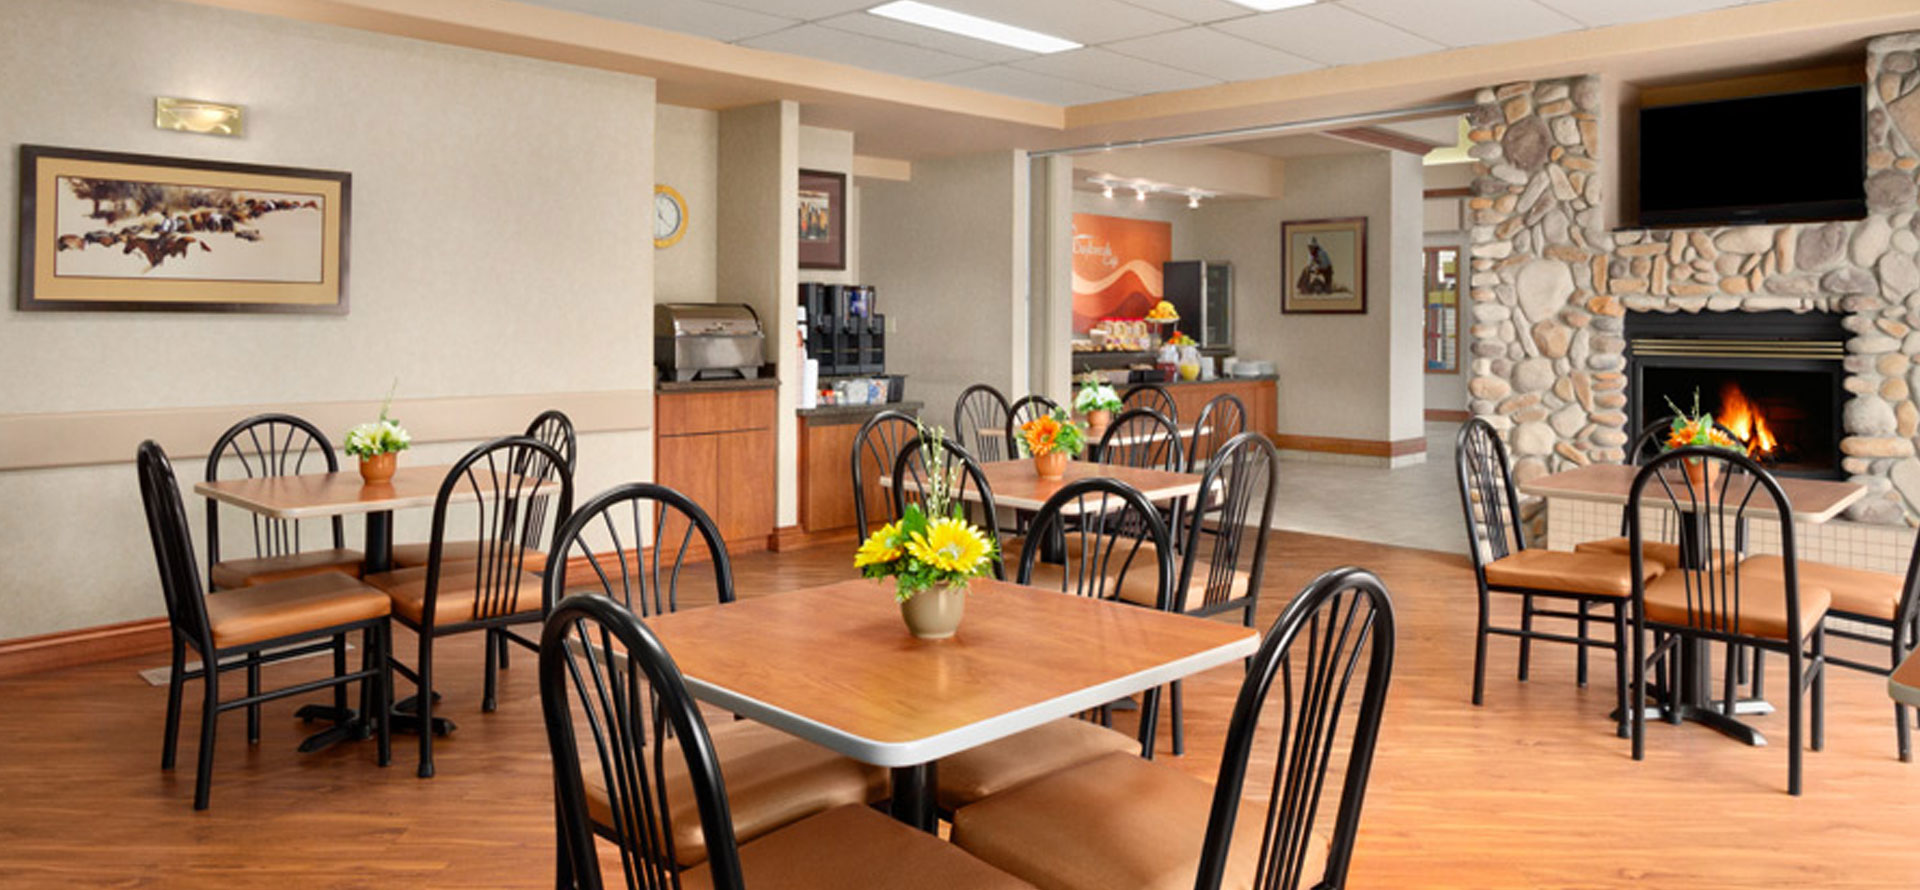 Large view of the sunny breakfast room at Days Inn Red Deer, Alberta with tables and bright fresh flowers and roaring fireplace.